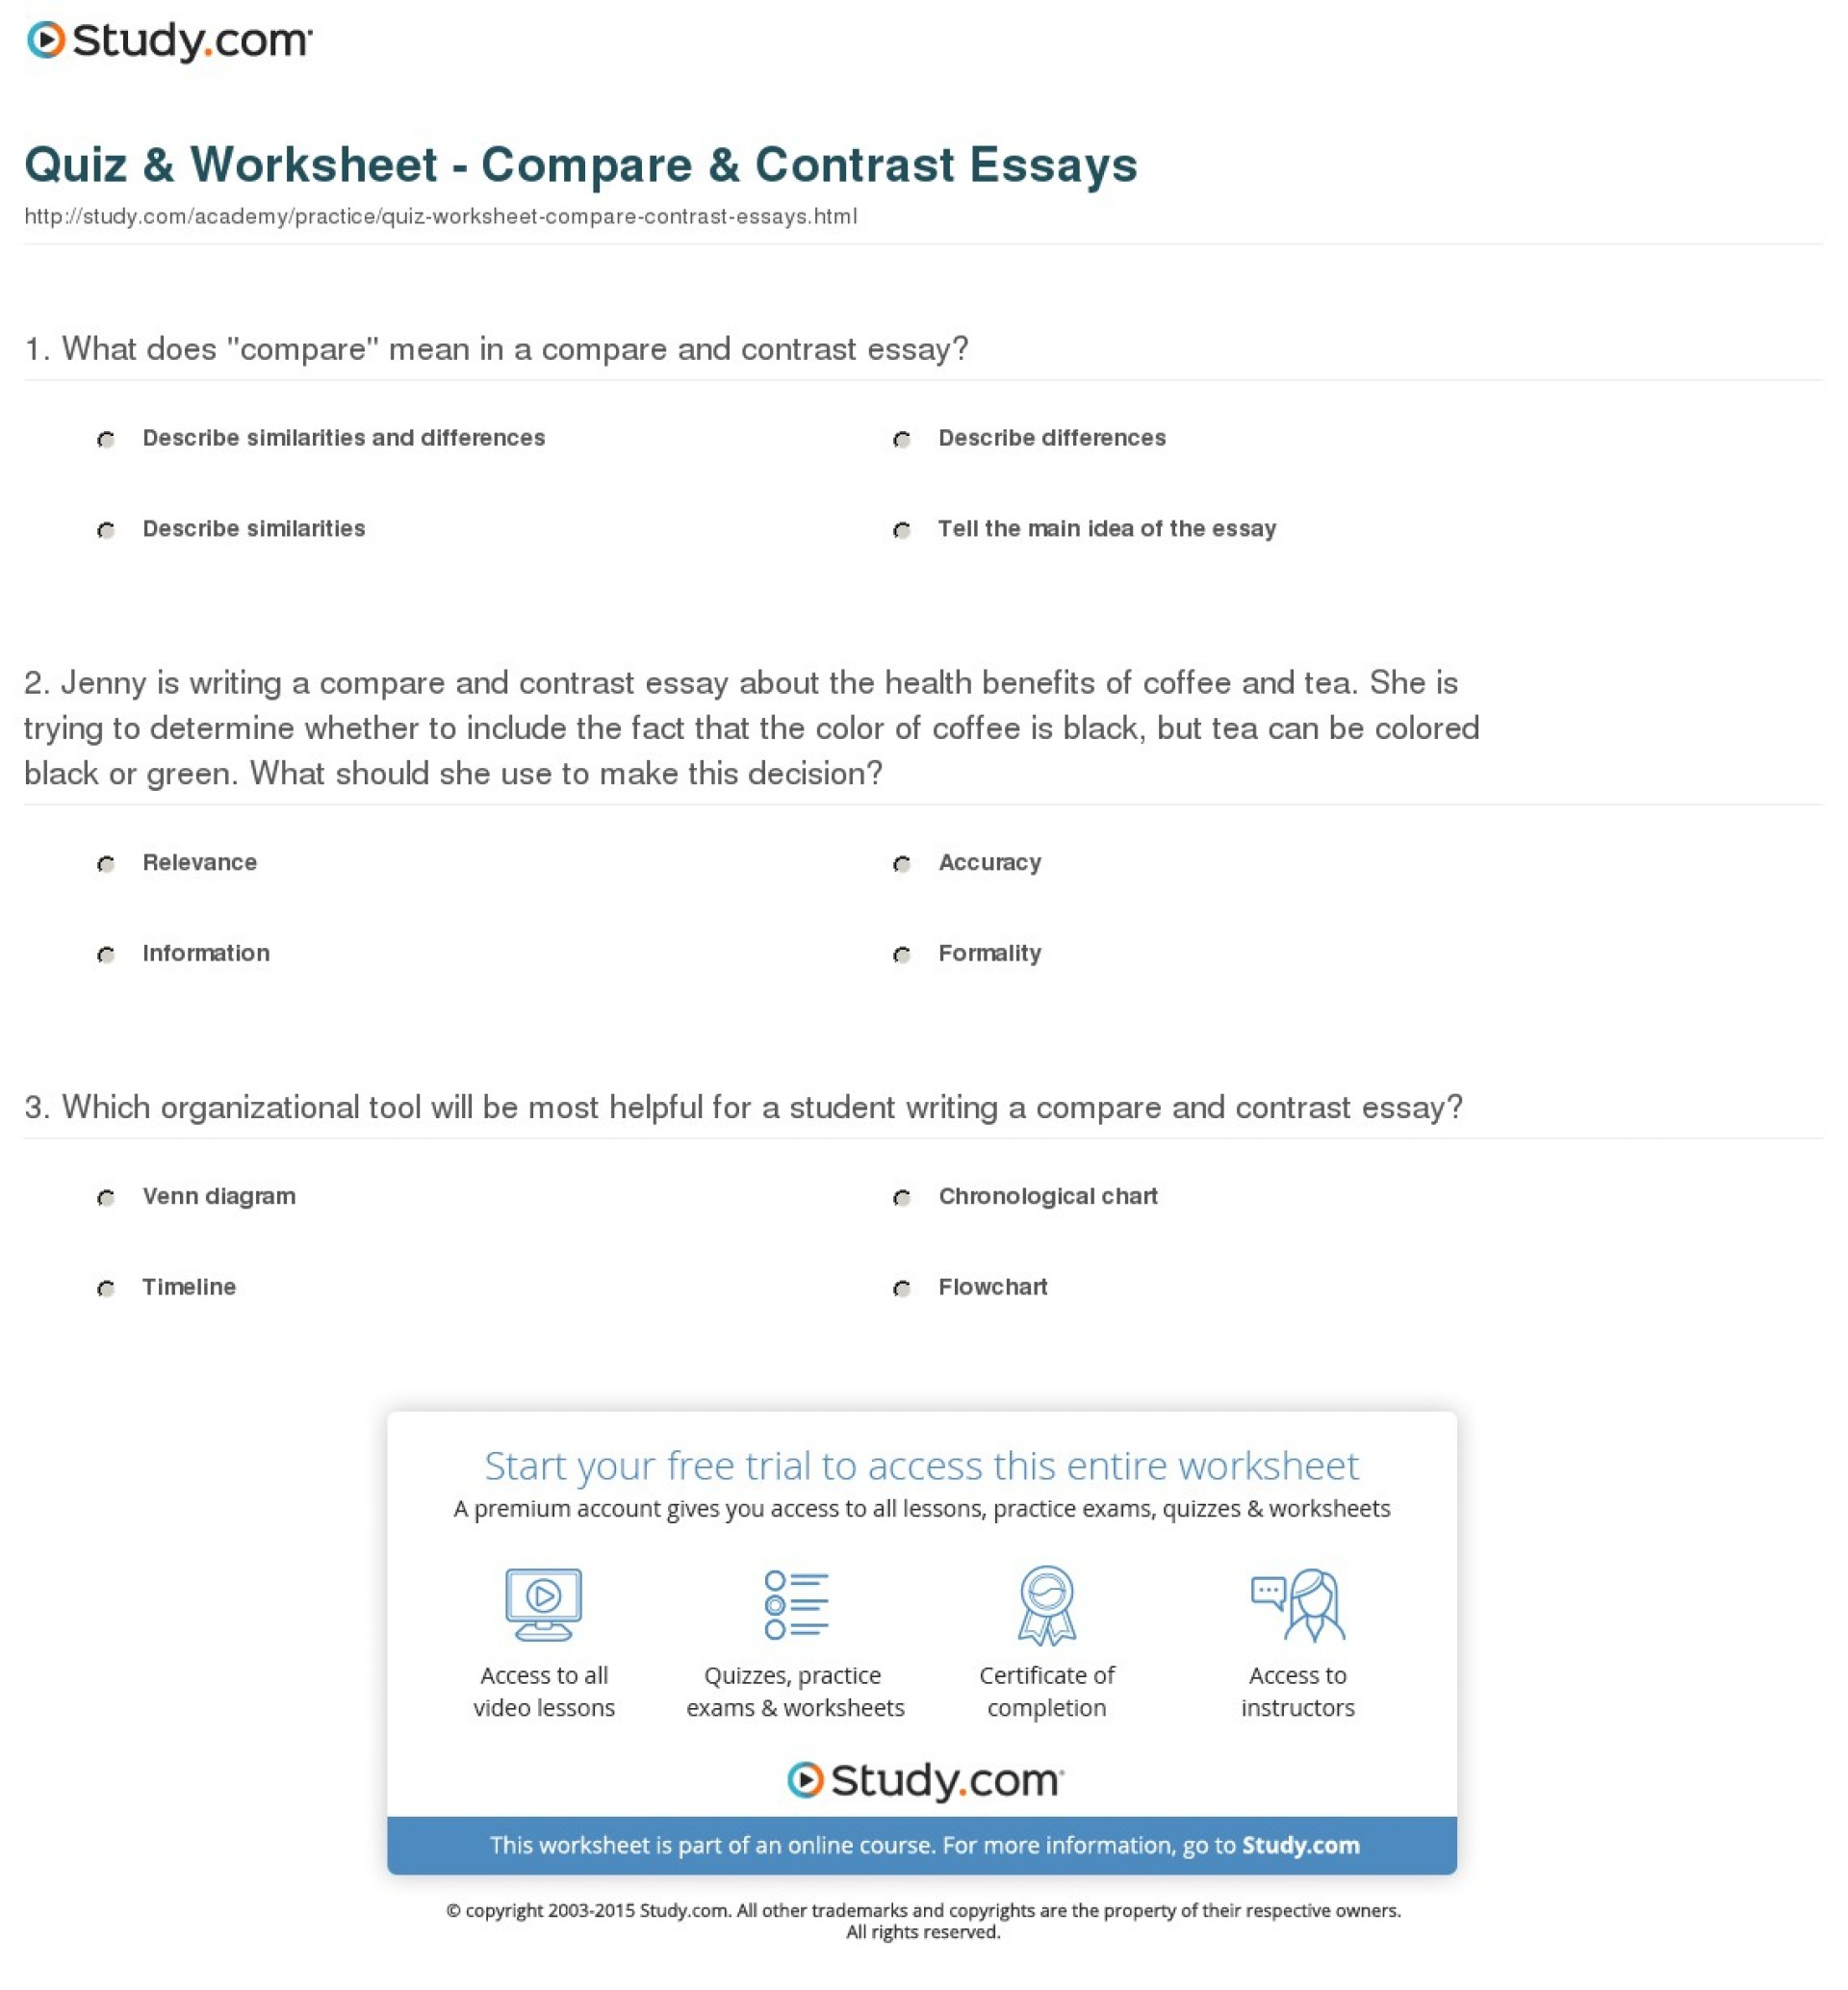 015 Essay Example Compare And Contrast Quiz Worksheet Frightening Topics For College Students Rubric 4th Grade Ideas 7th 1920